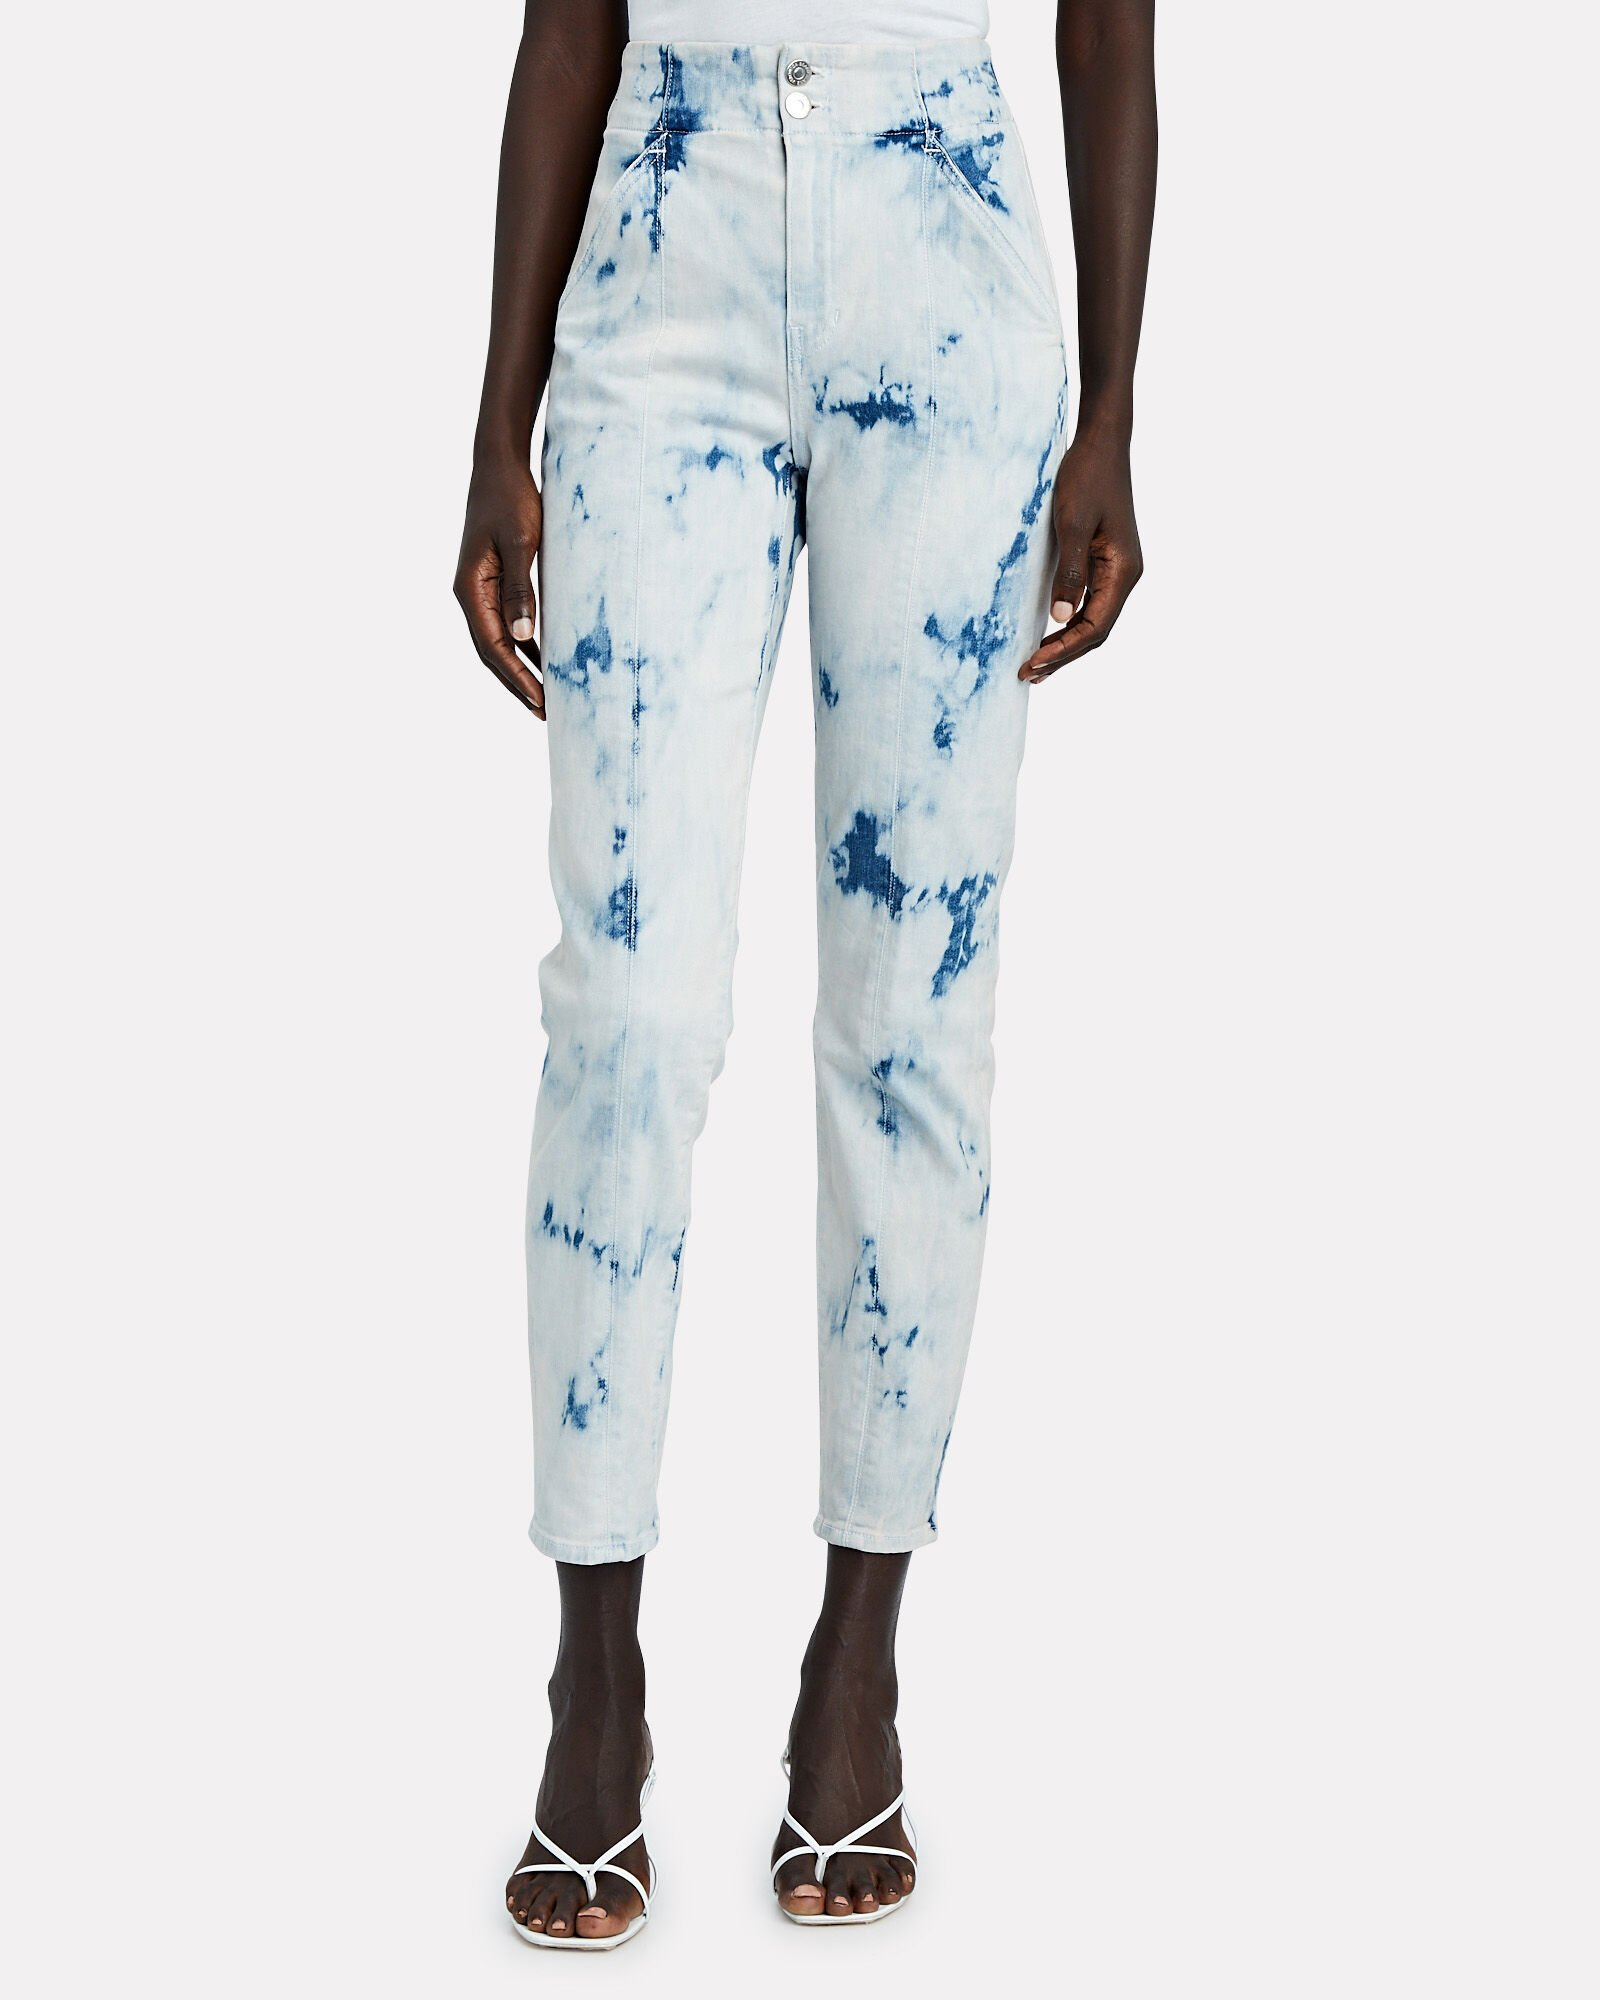 Kallie High-Rise Tie-Dye Jeans, MULTI, hi-res